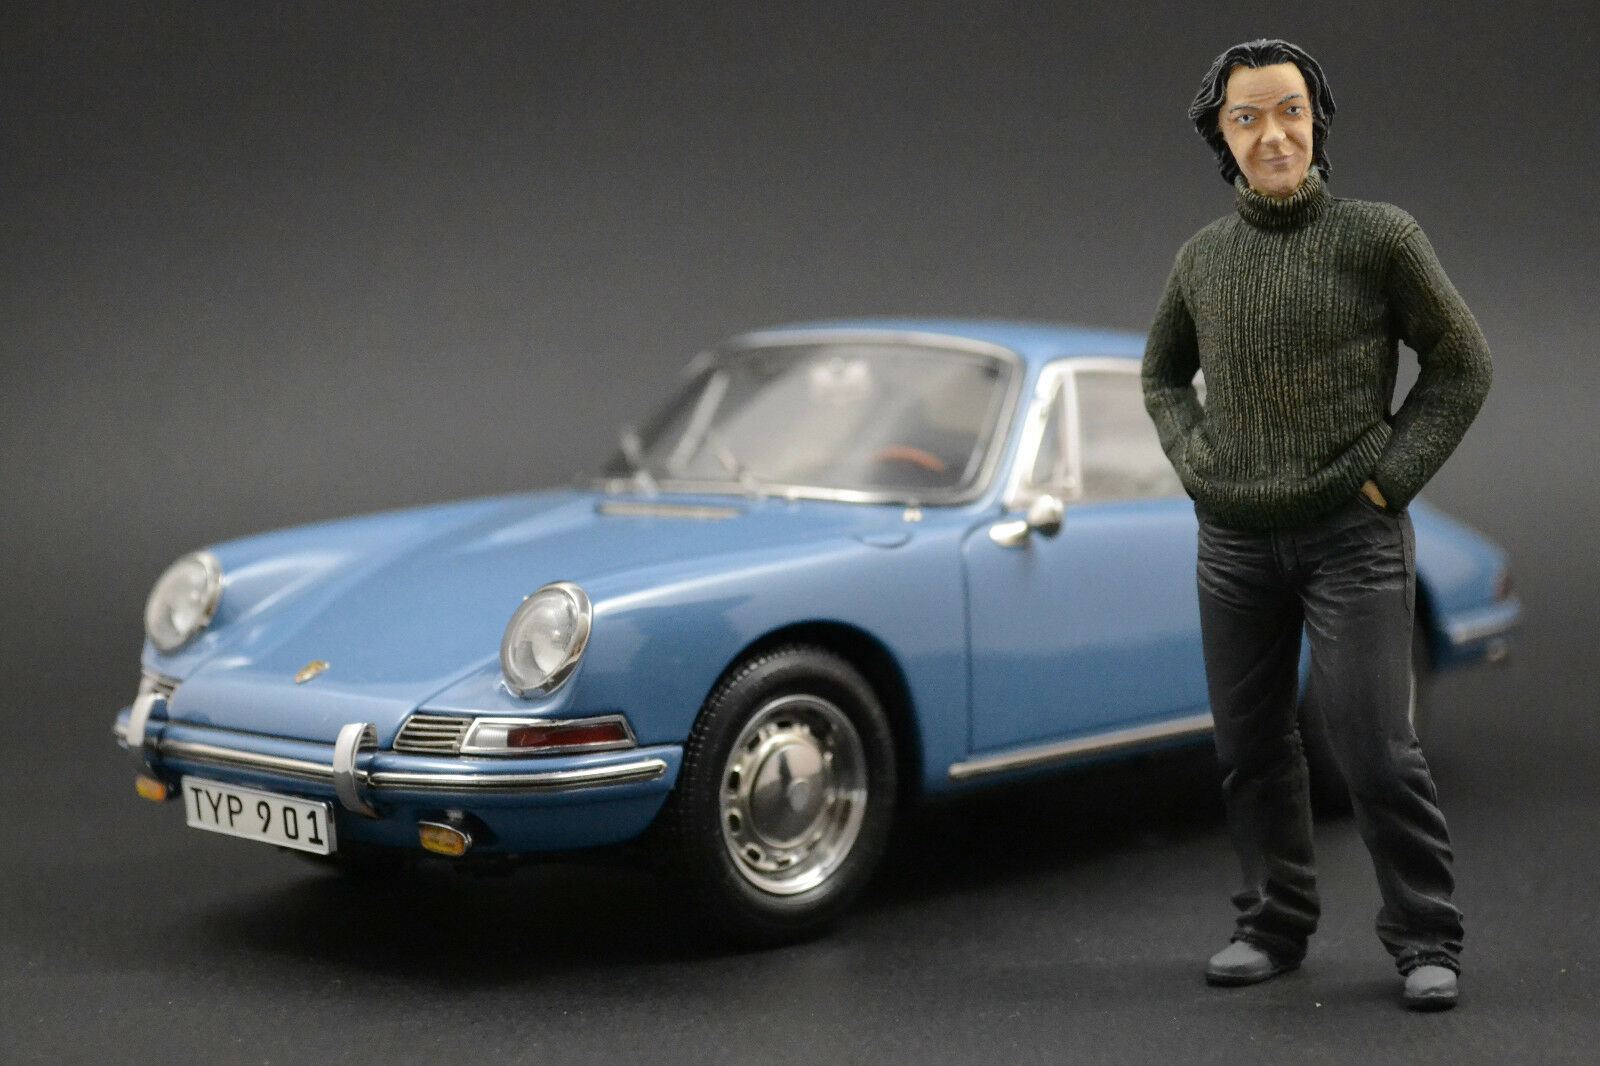 James May Figura per 1 18 Porsche 911 voiturerera AUTOart